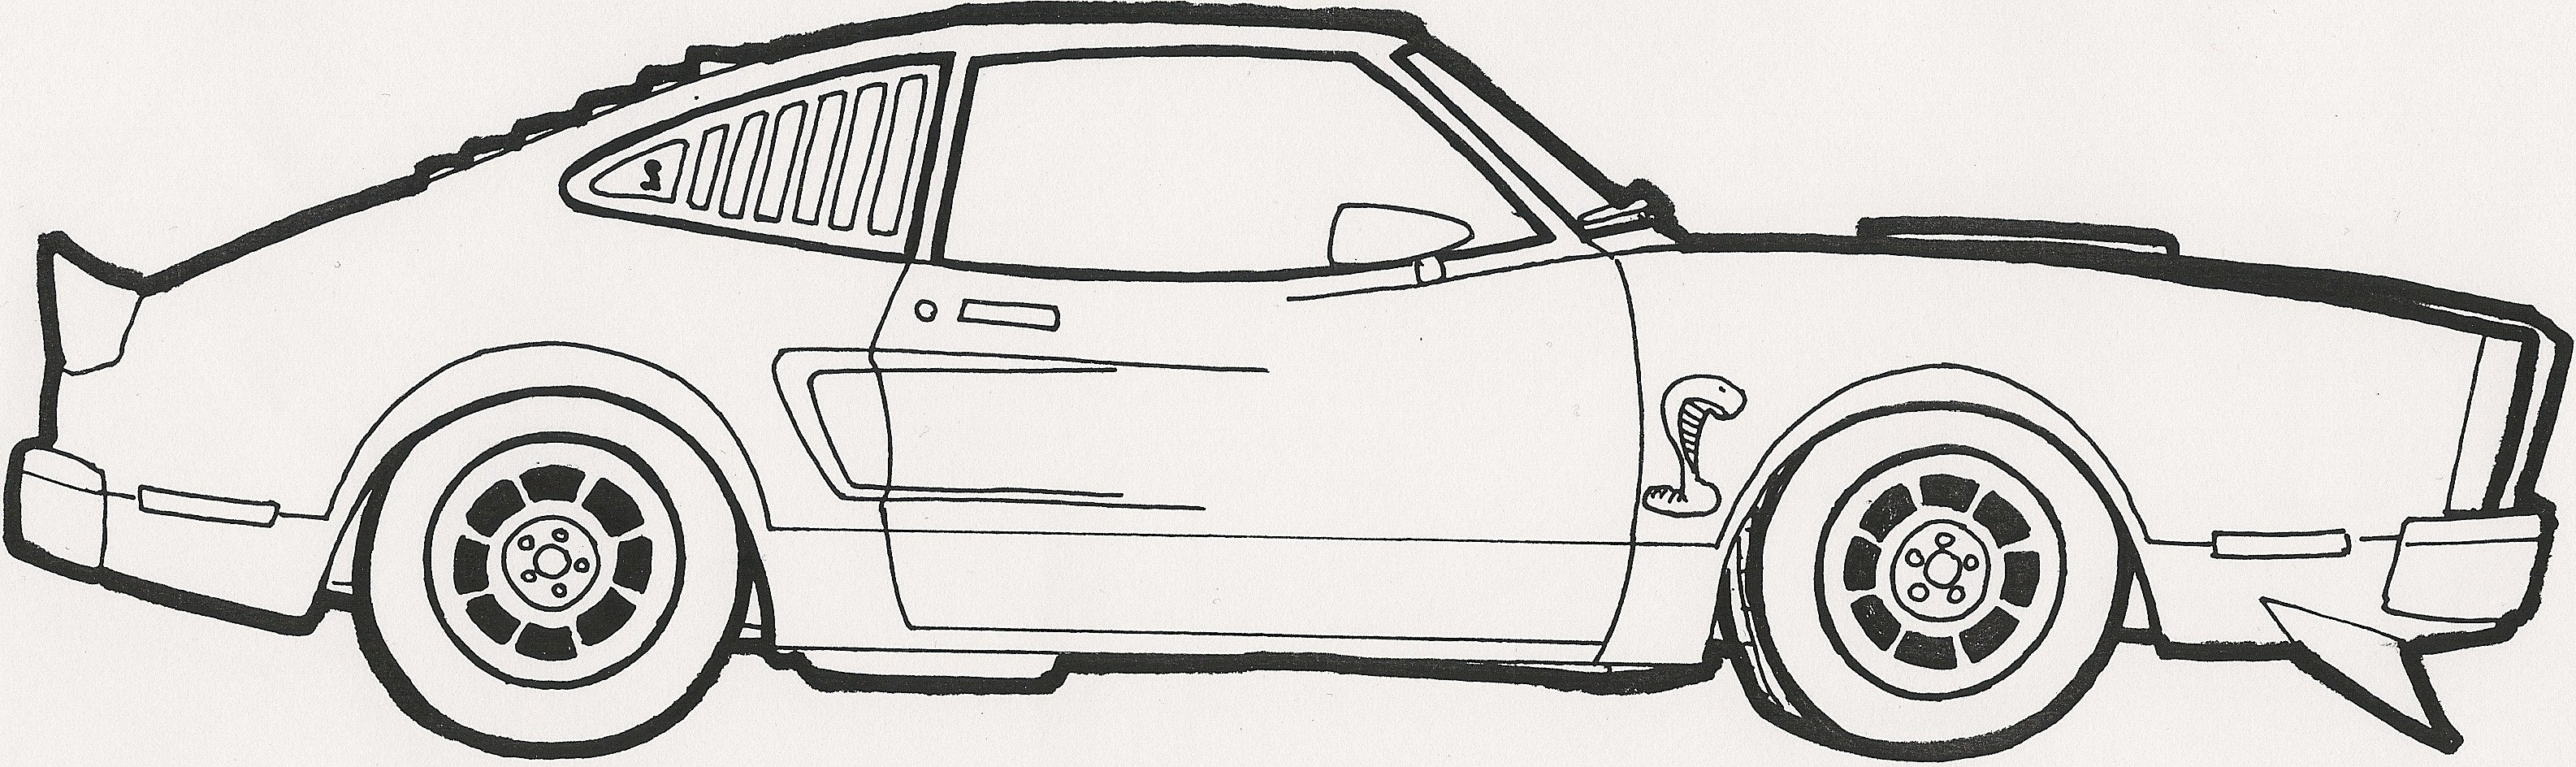 Super Car ford Mustang Coloring Page Inspirational Mustang Coloring to Print Of Mustang Coloring Pages Beautiful ford Mustang Gt Car Coloring Pages Download